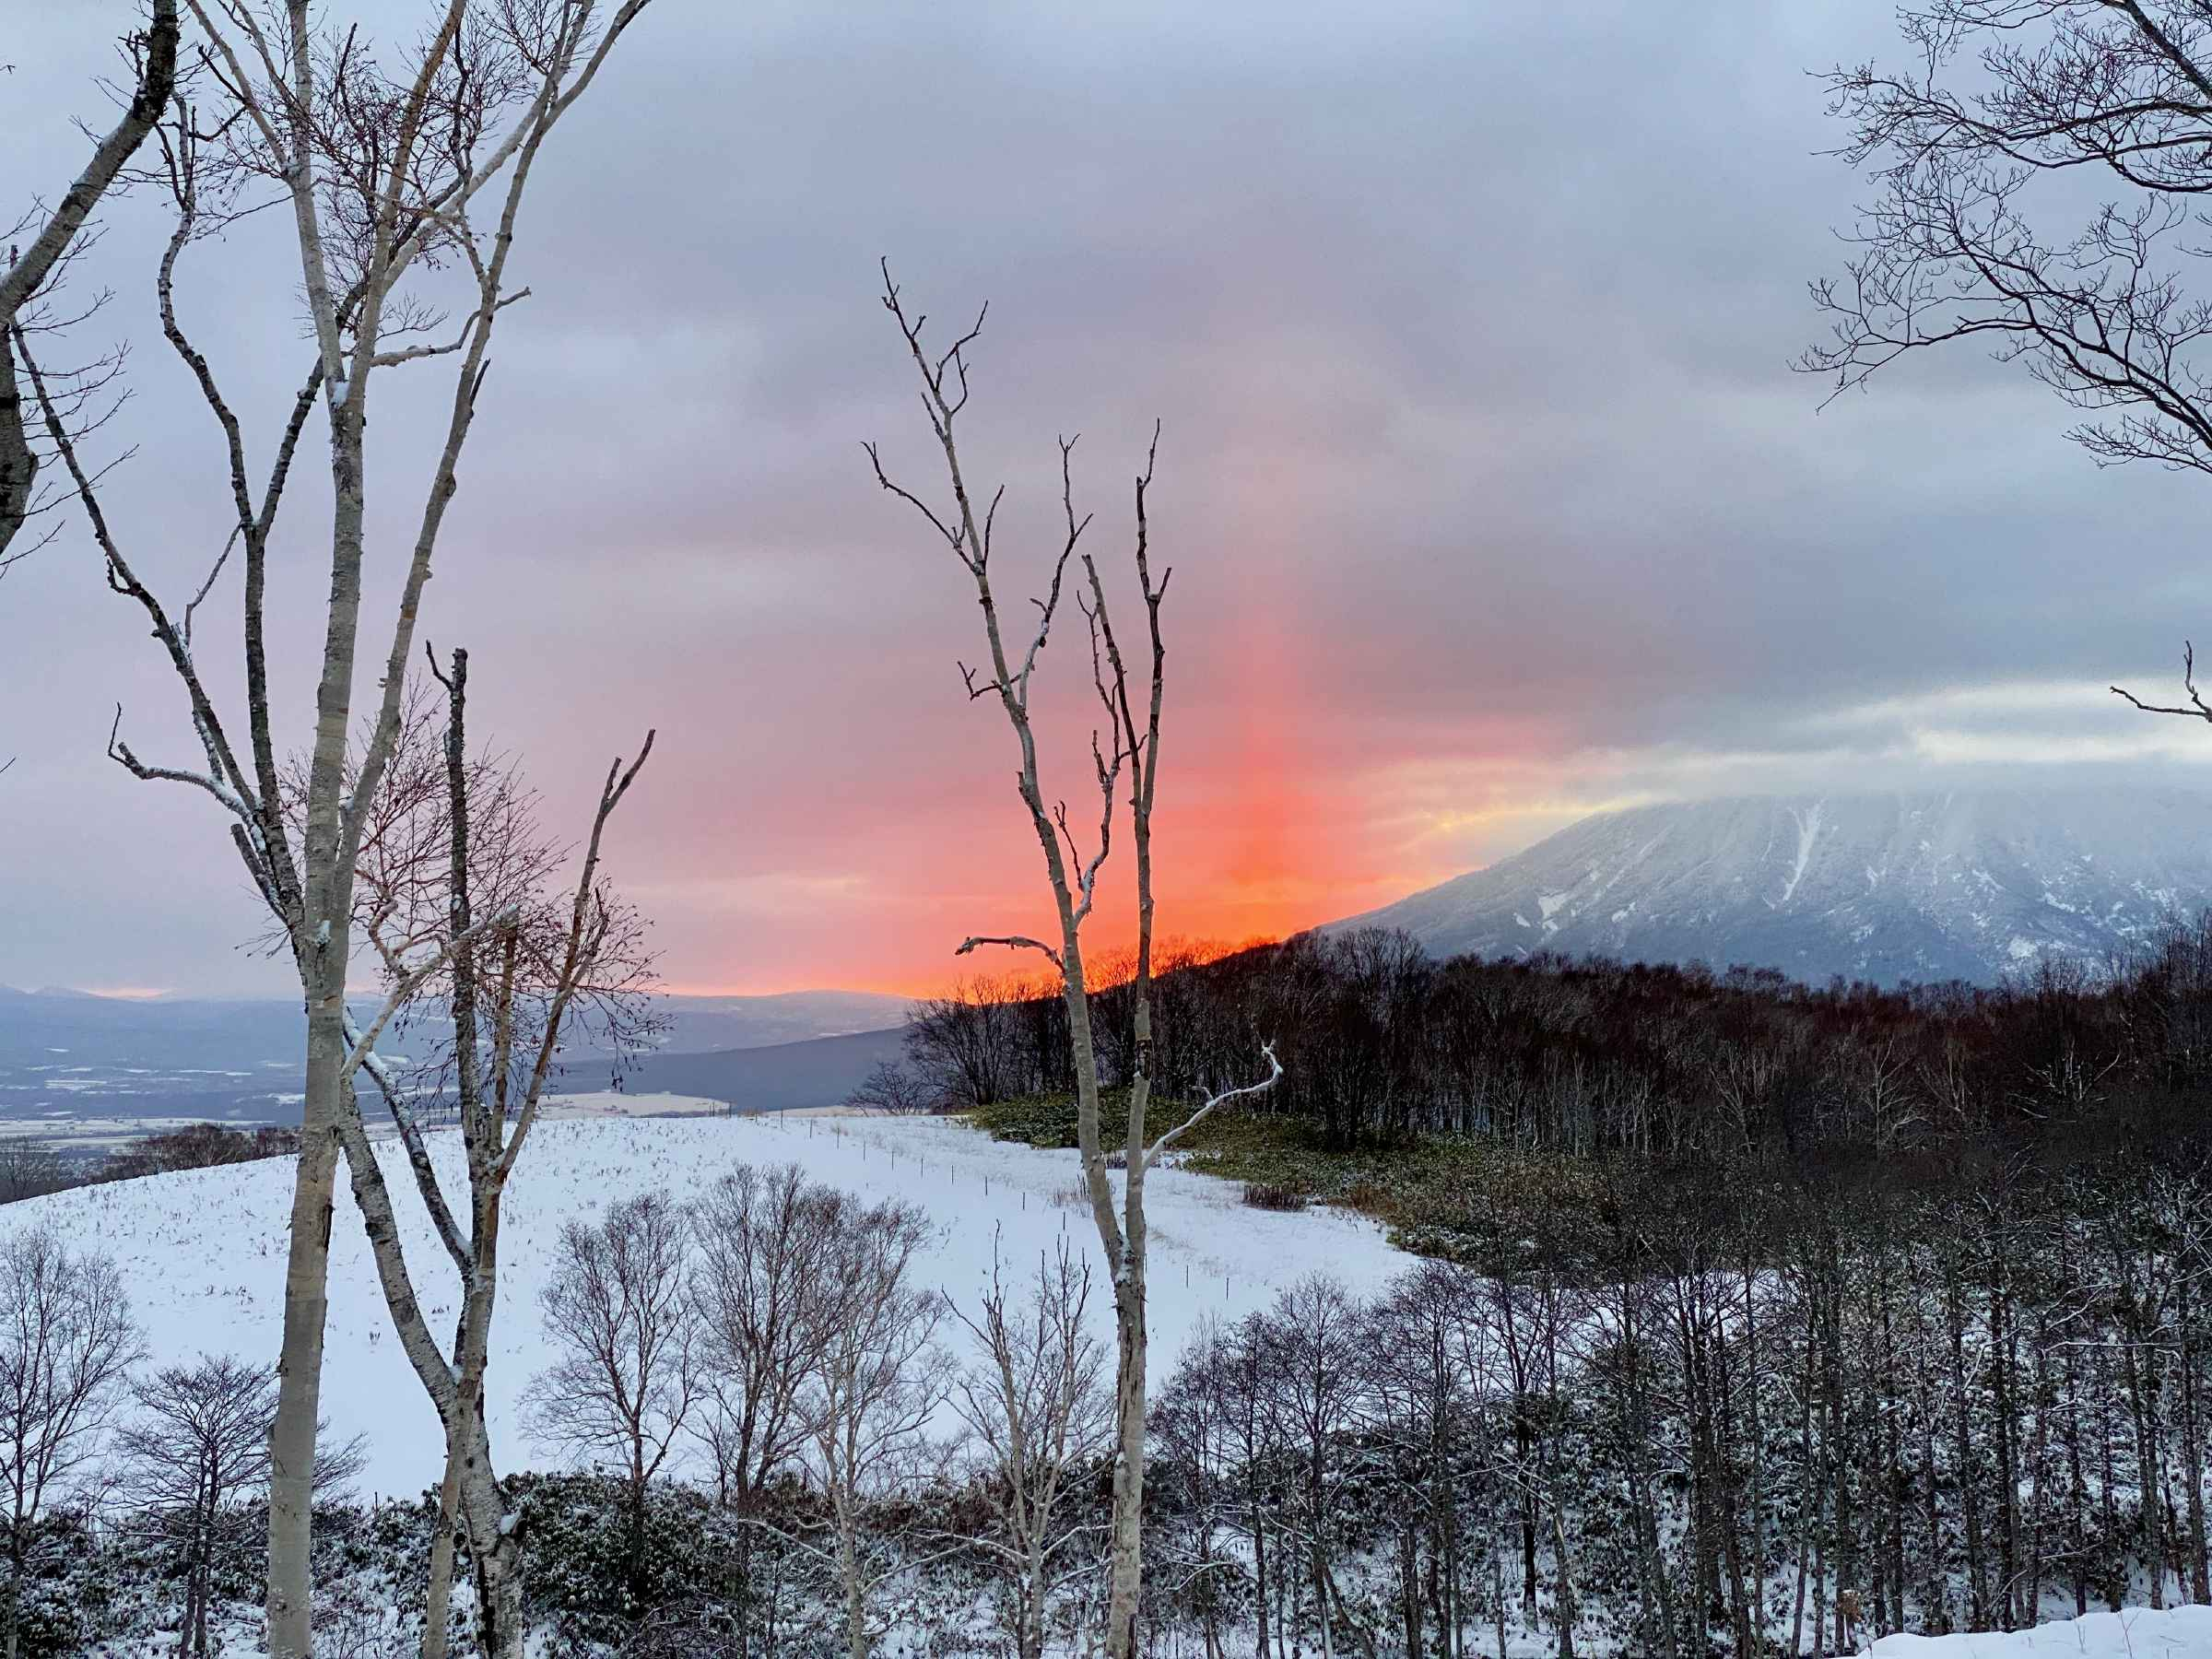 Photo of the sun rising from behind a nearby mountain